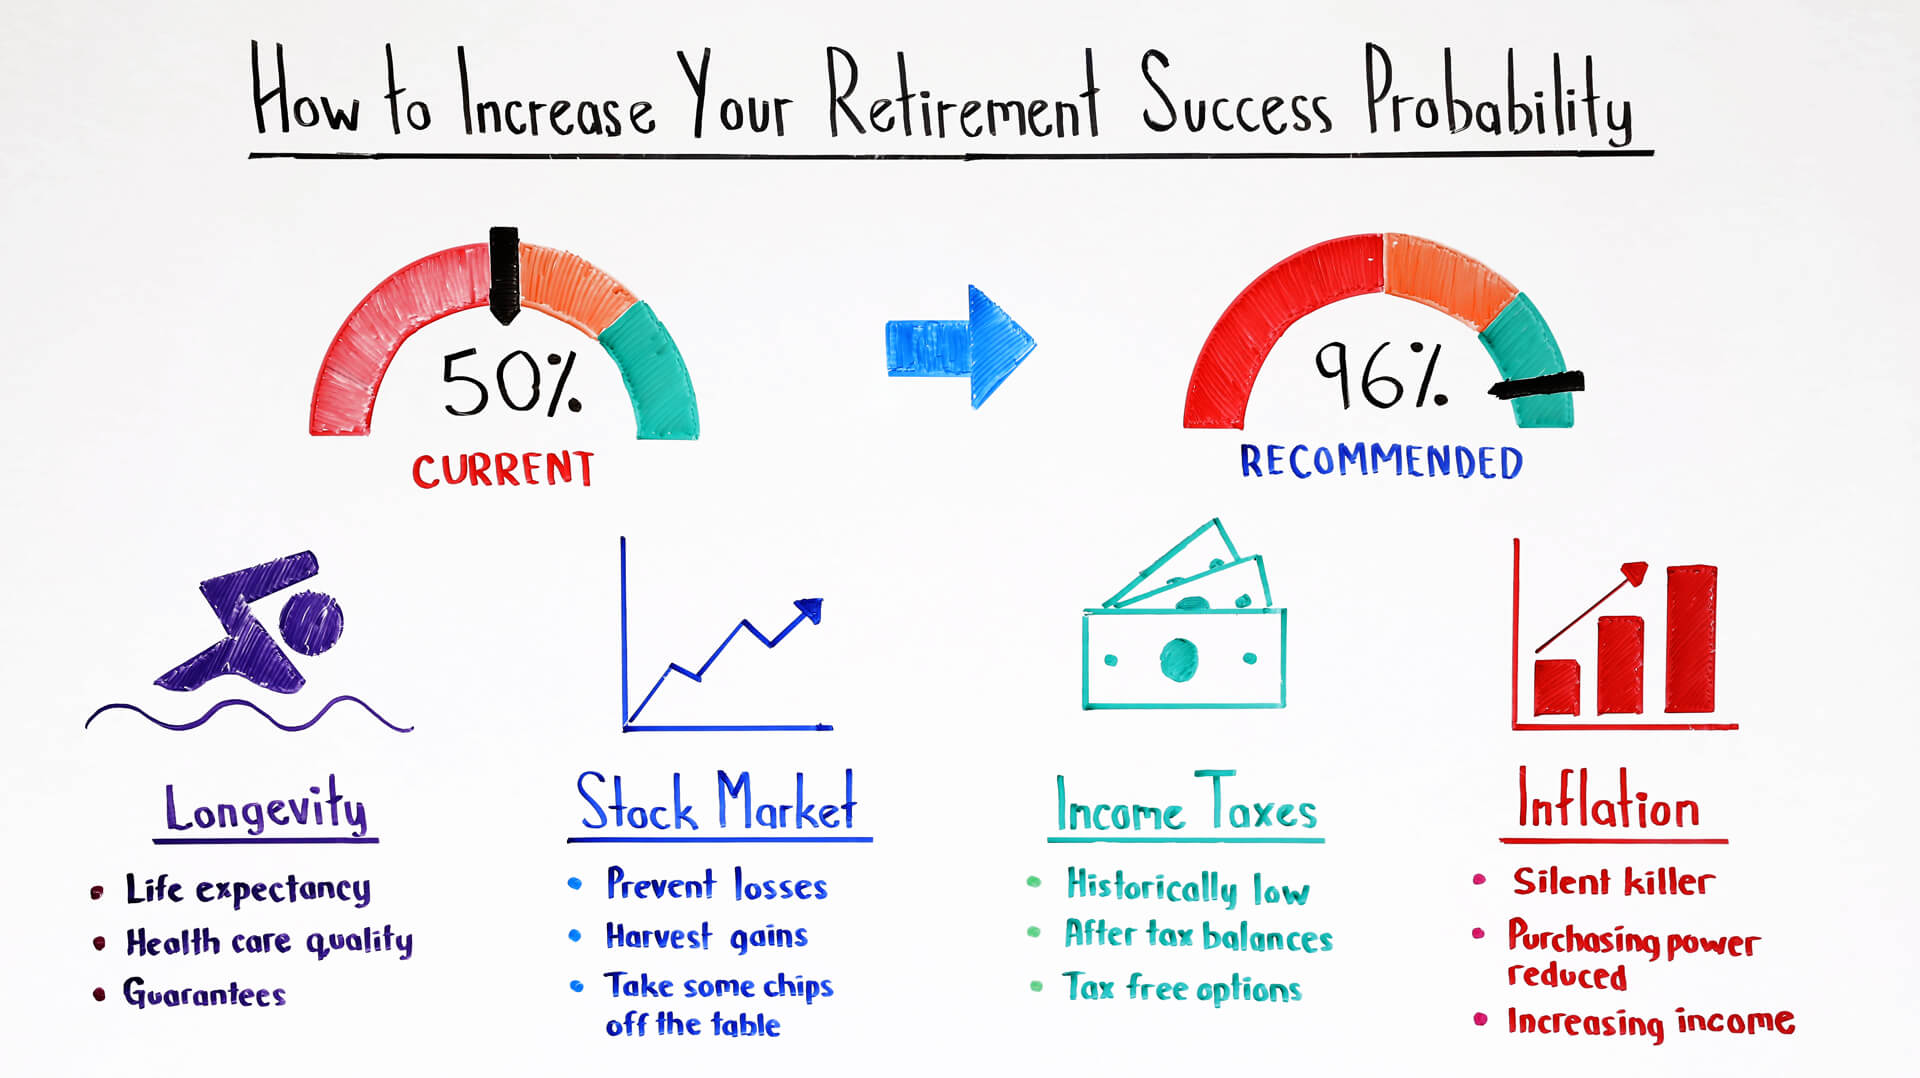 How to Increase Your Retirement Success Probability